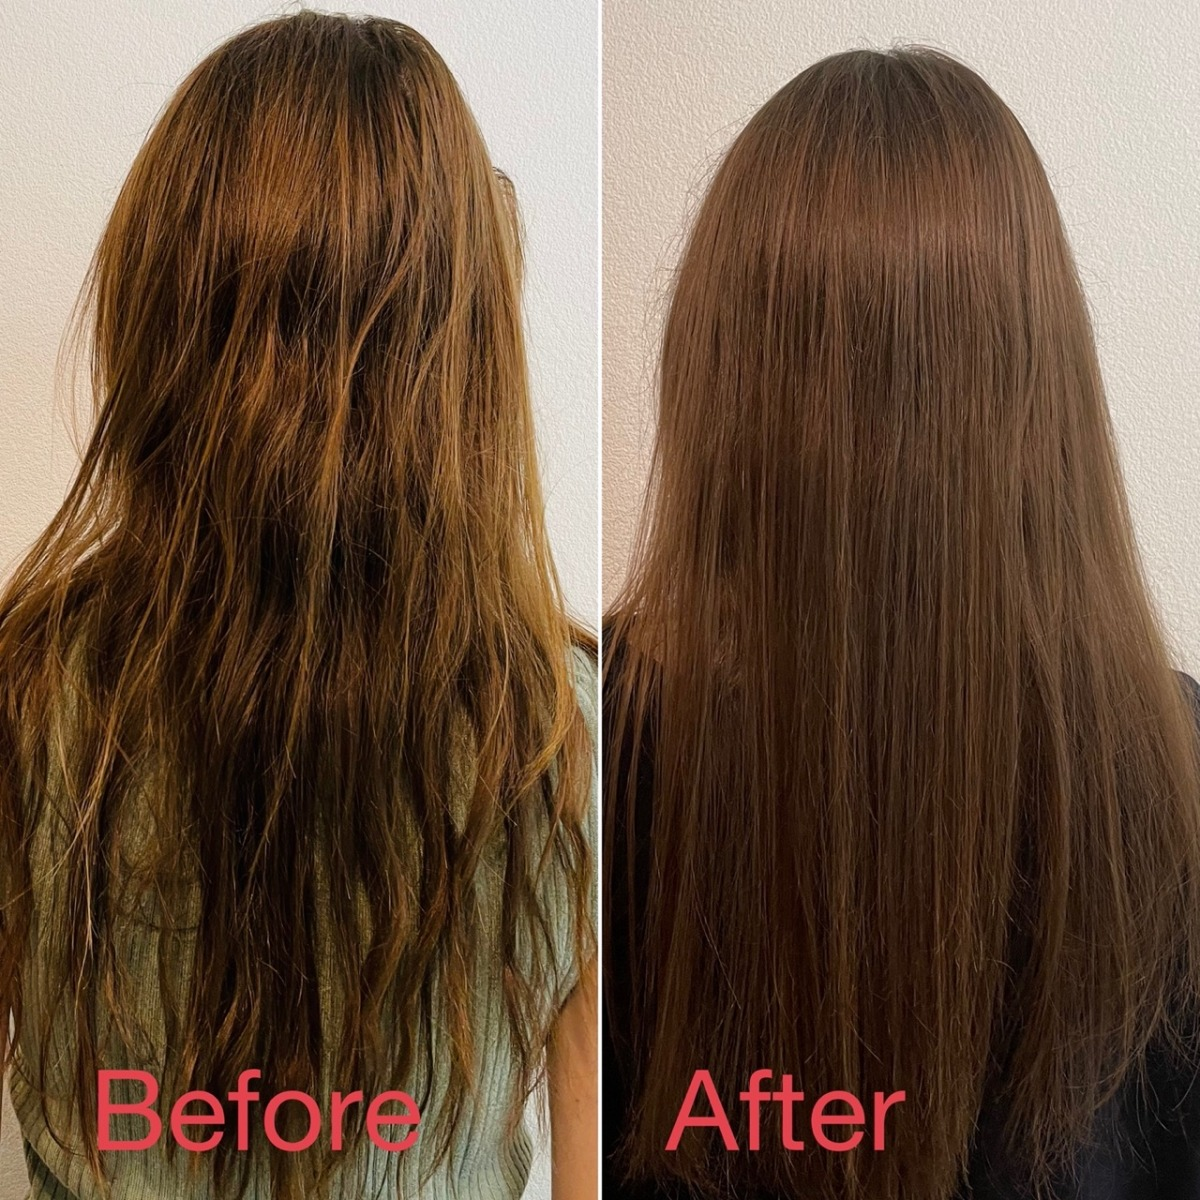 the-public-organic-super-positive-shampoo-and-treatment-before-and-after